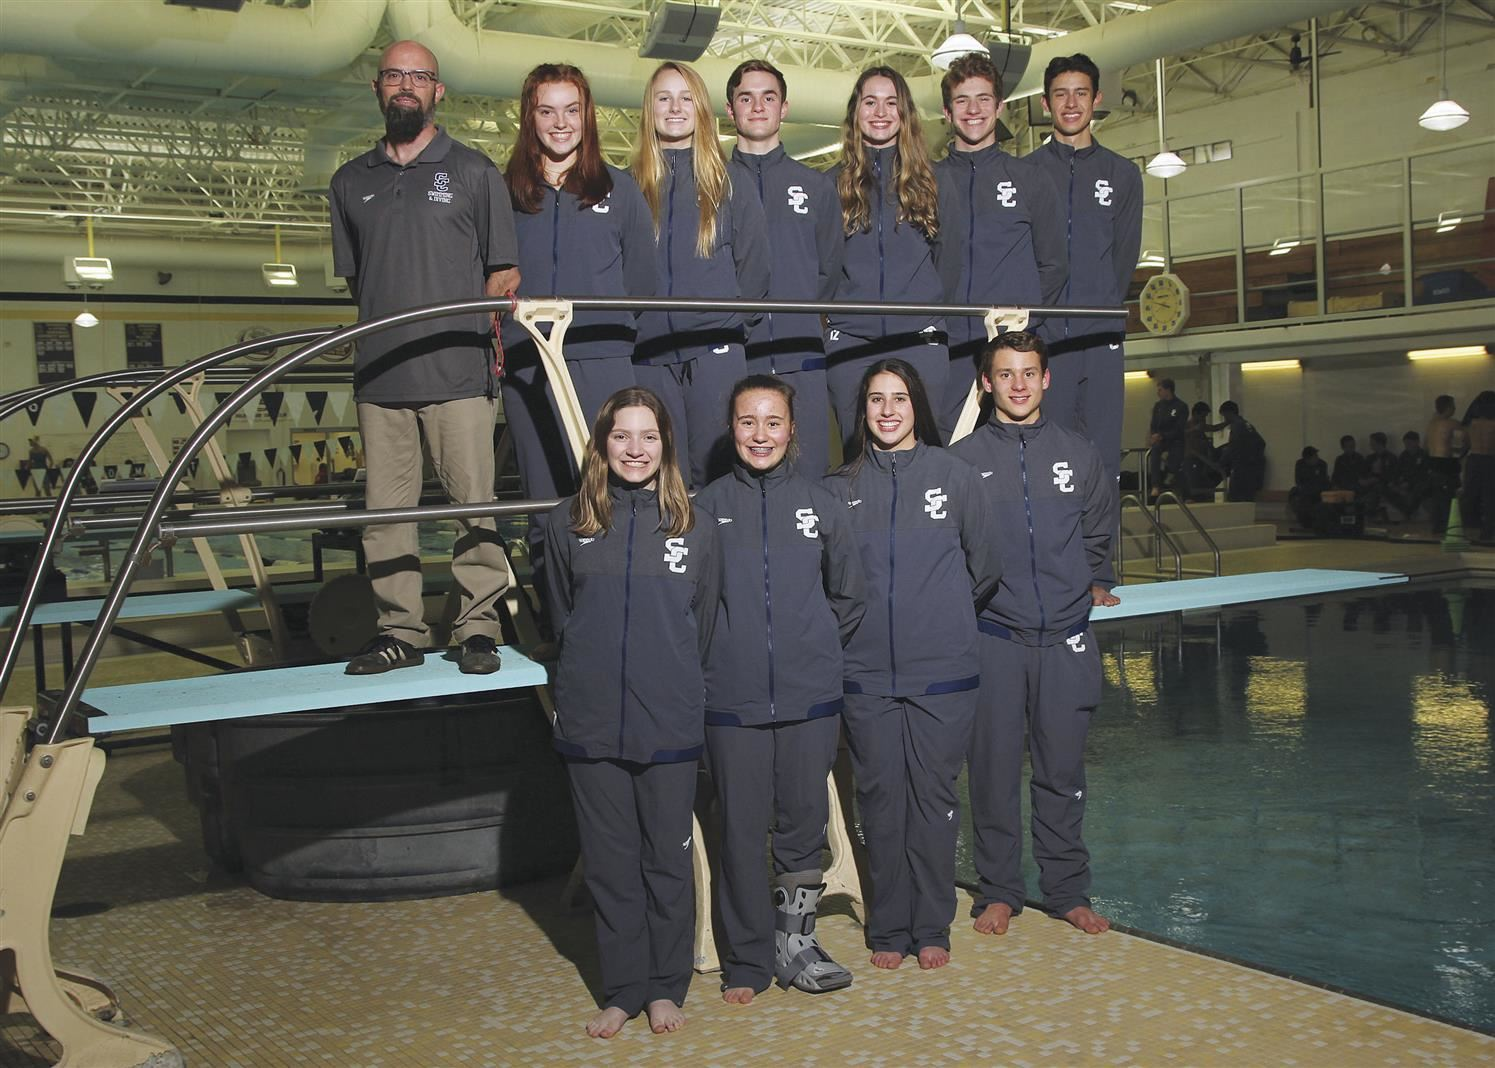 Boys / Girls Diving - State Qualifiers - Jackson Salisbury - State Runner-Up / Patrick Burke - 7th Place / Josh Schwartz - 8th Place / Tara FitzGerald - 10th Place / Abby Wilkov - 14th Place / Alex Ludgate - 20th Place / Bethany Mercer - 23rd Place